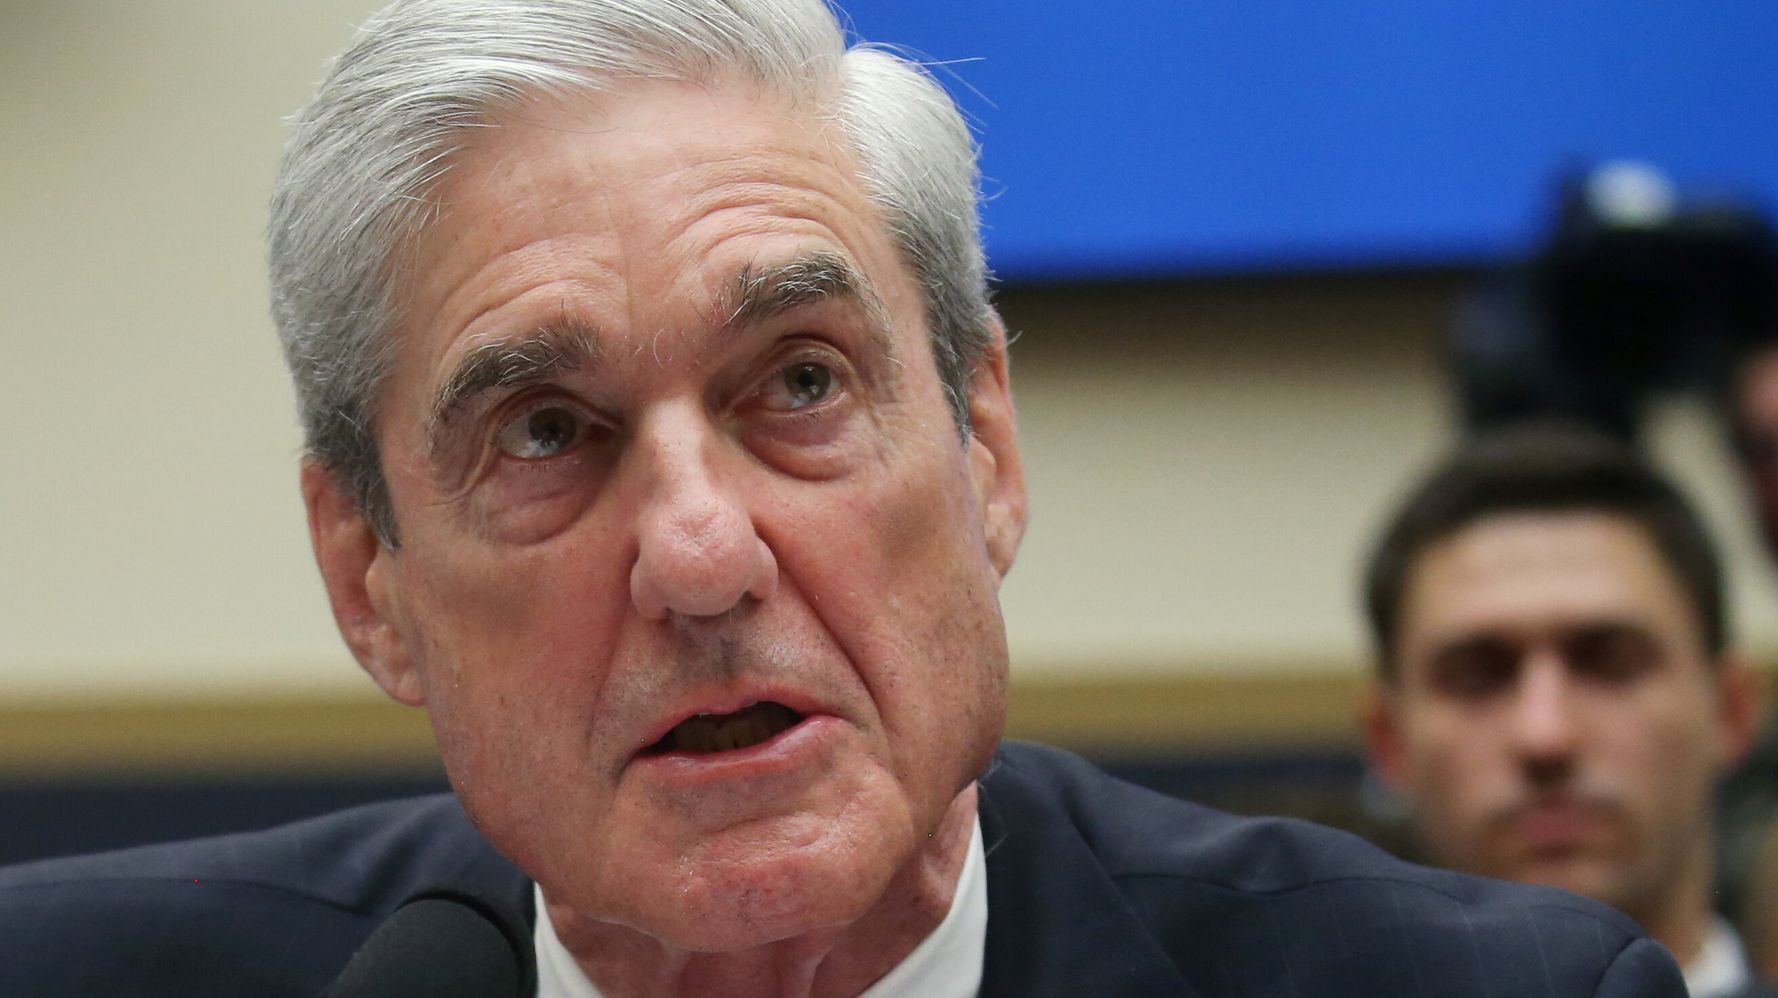 Mueller Inadvertently Gives The World A Blistering New Catchphrase